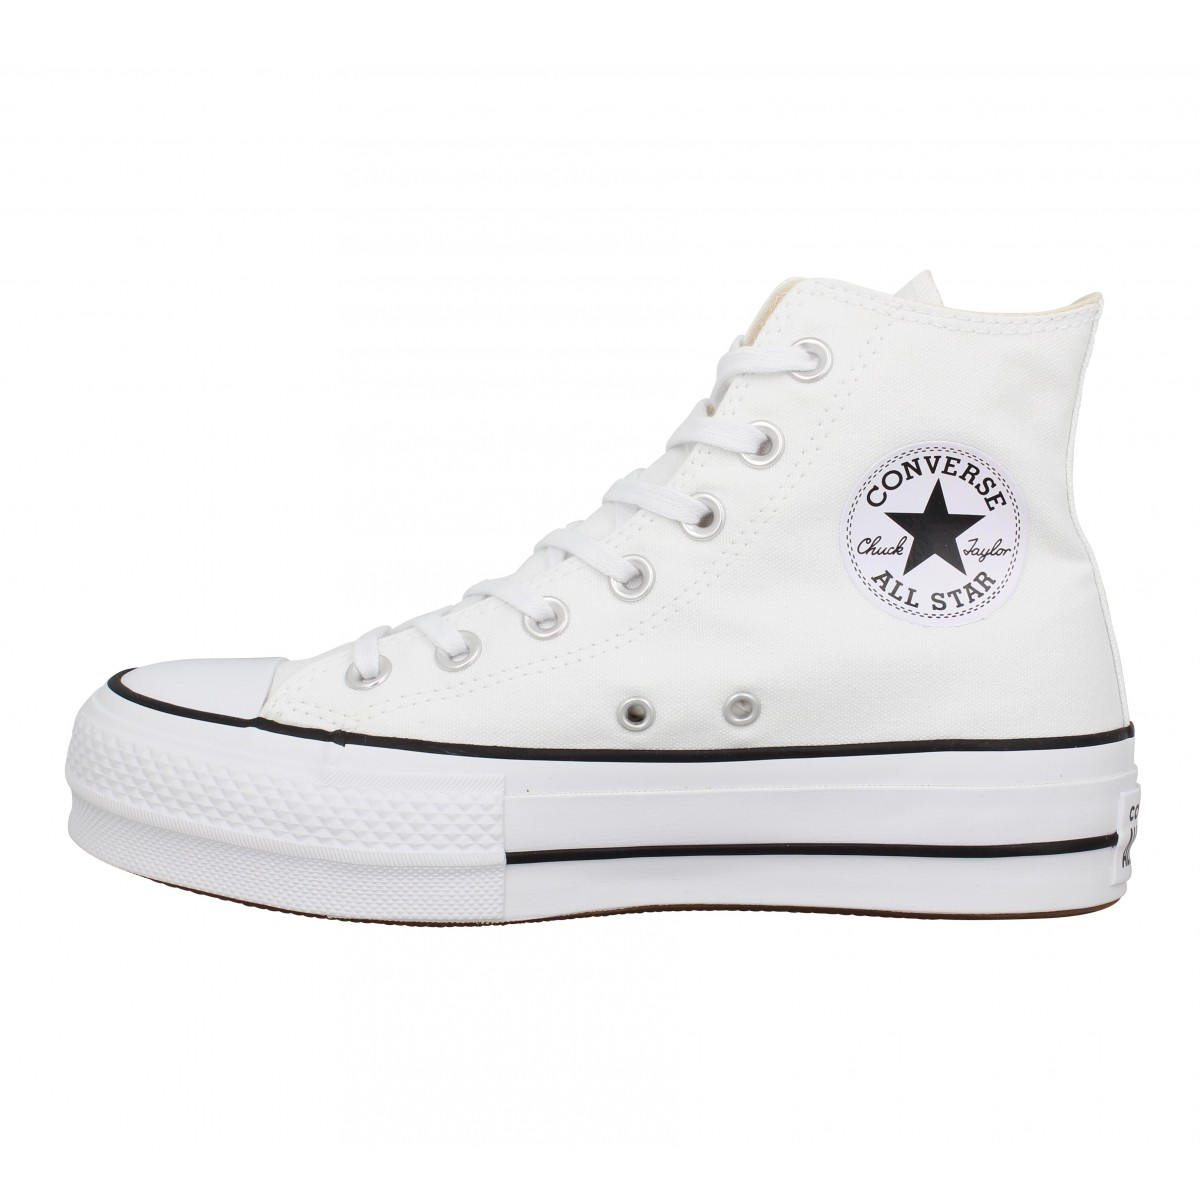 CONVERSE Chuck Taylor All Star Lift Hi toile Femme Blanc